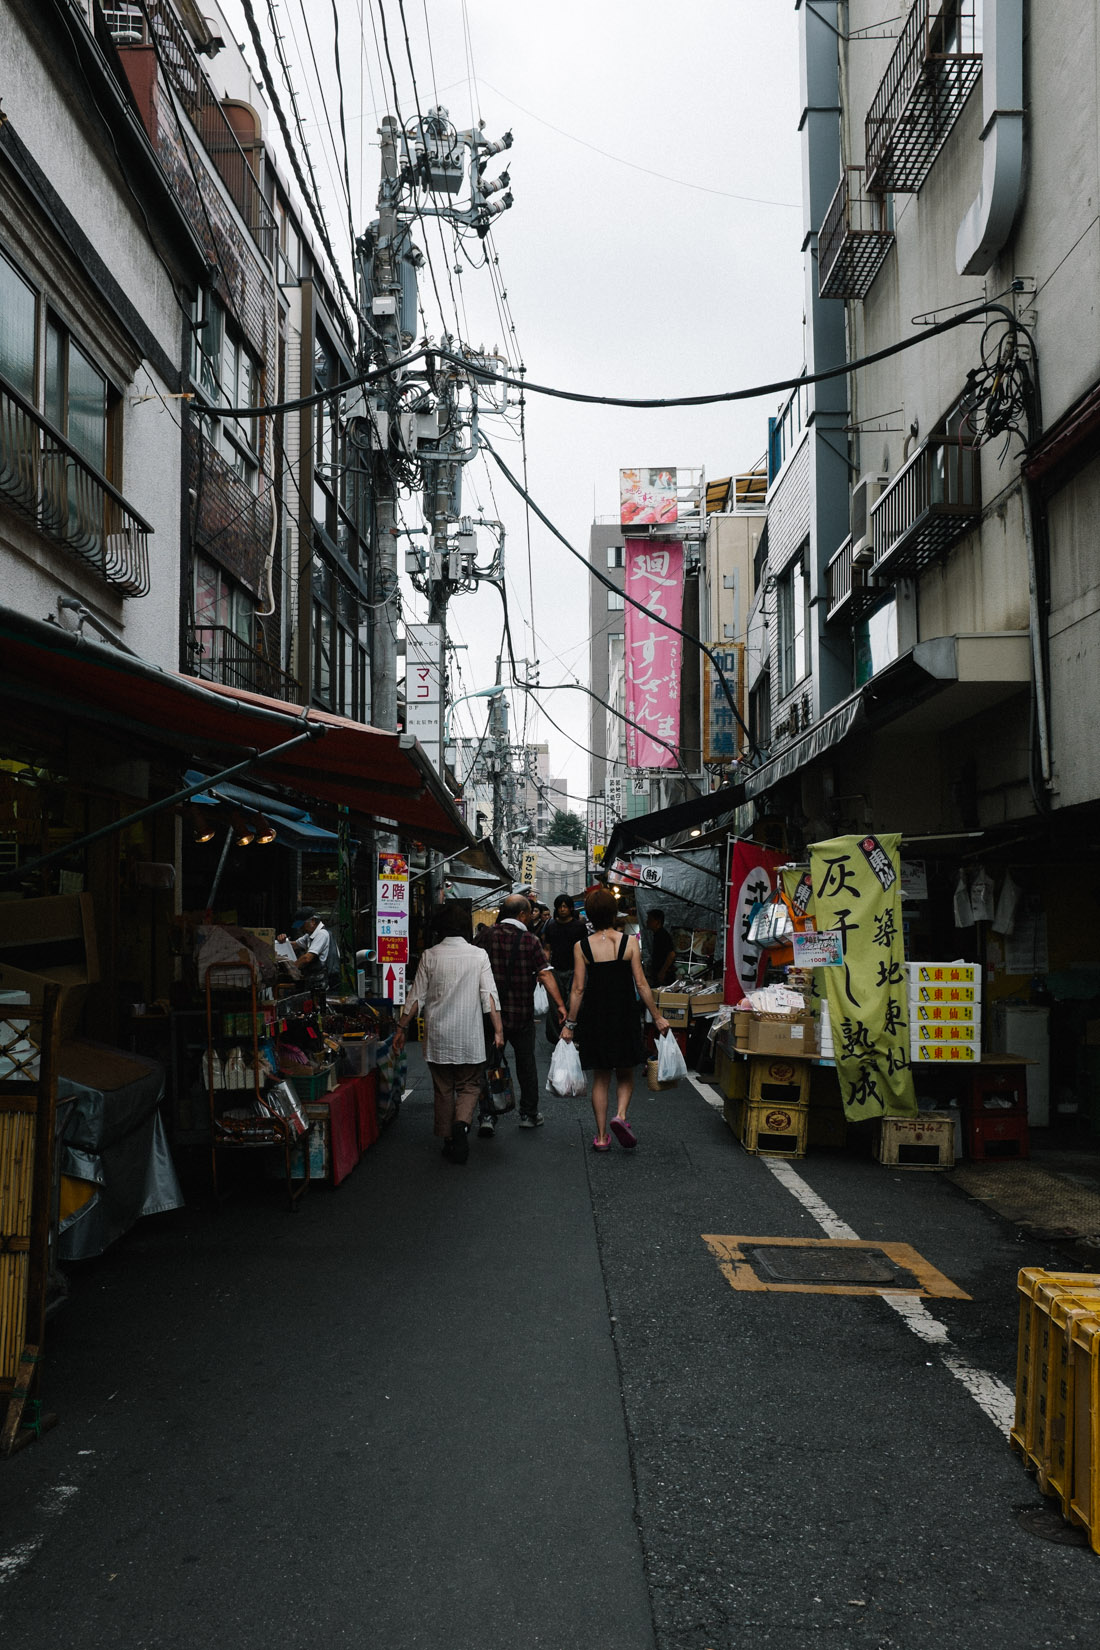 One of the many outer market streets.